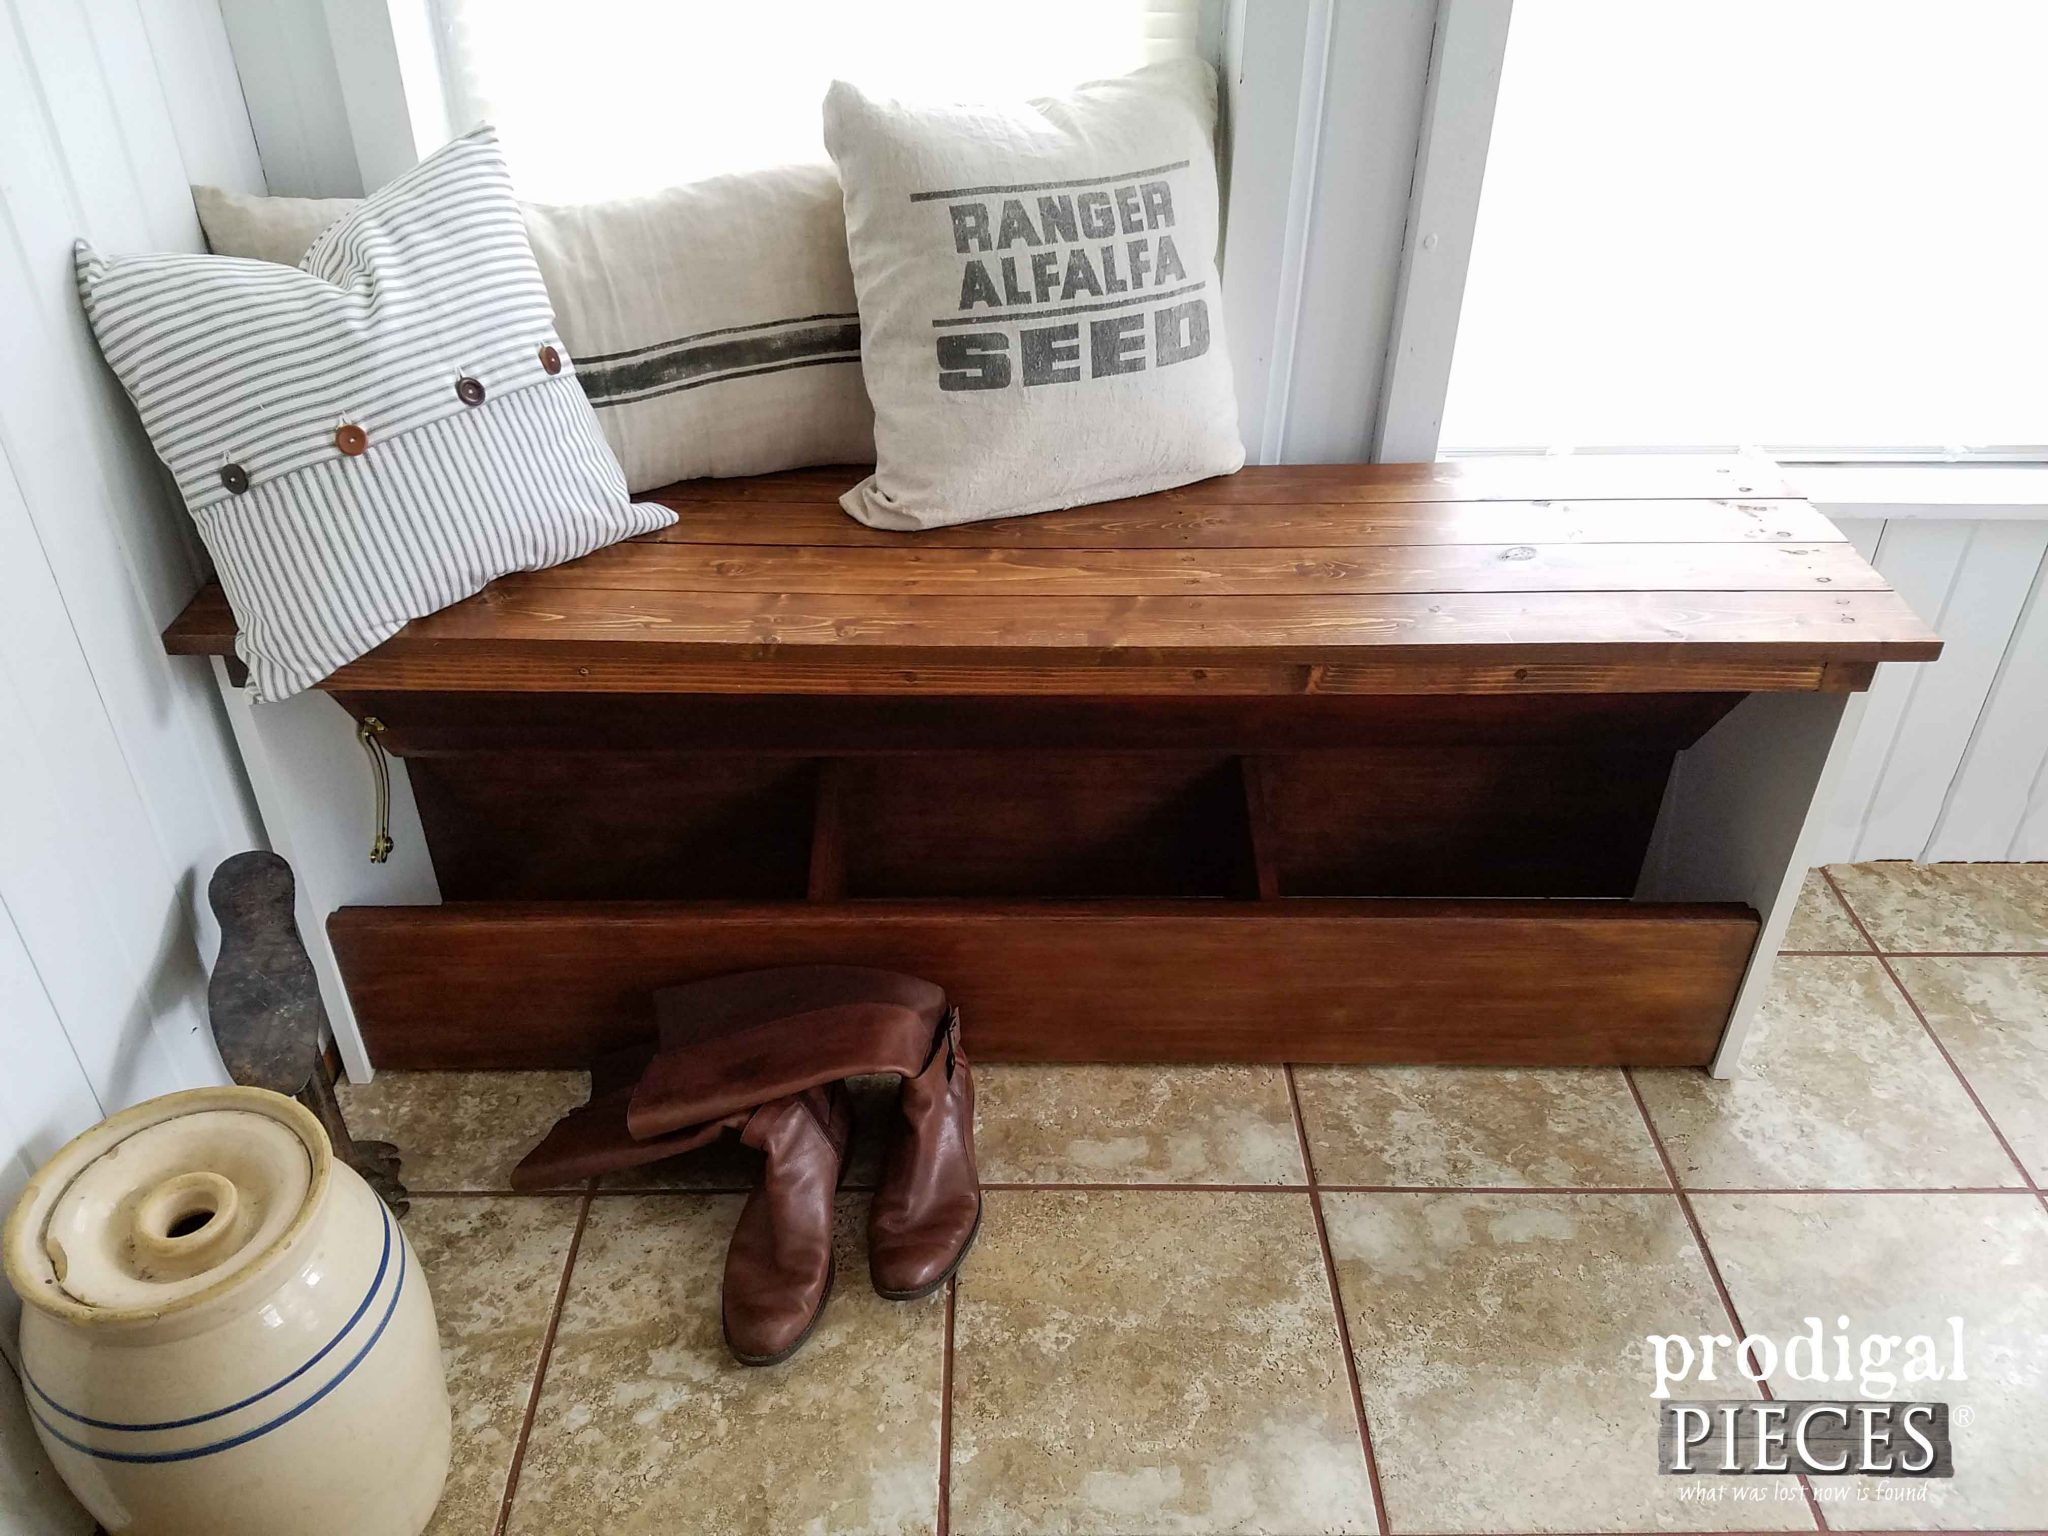 Open Storage Bench by Prodigal Pieces | prodigalpieces.com